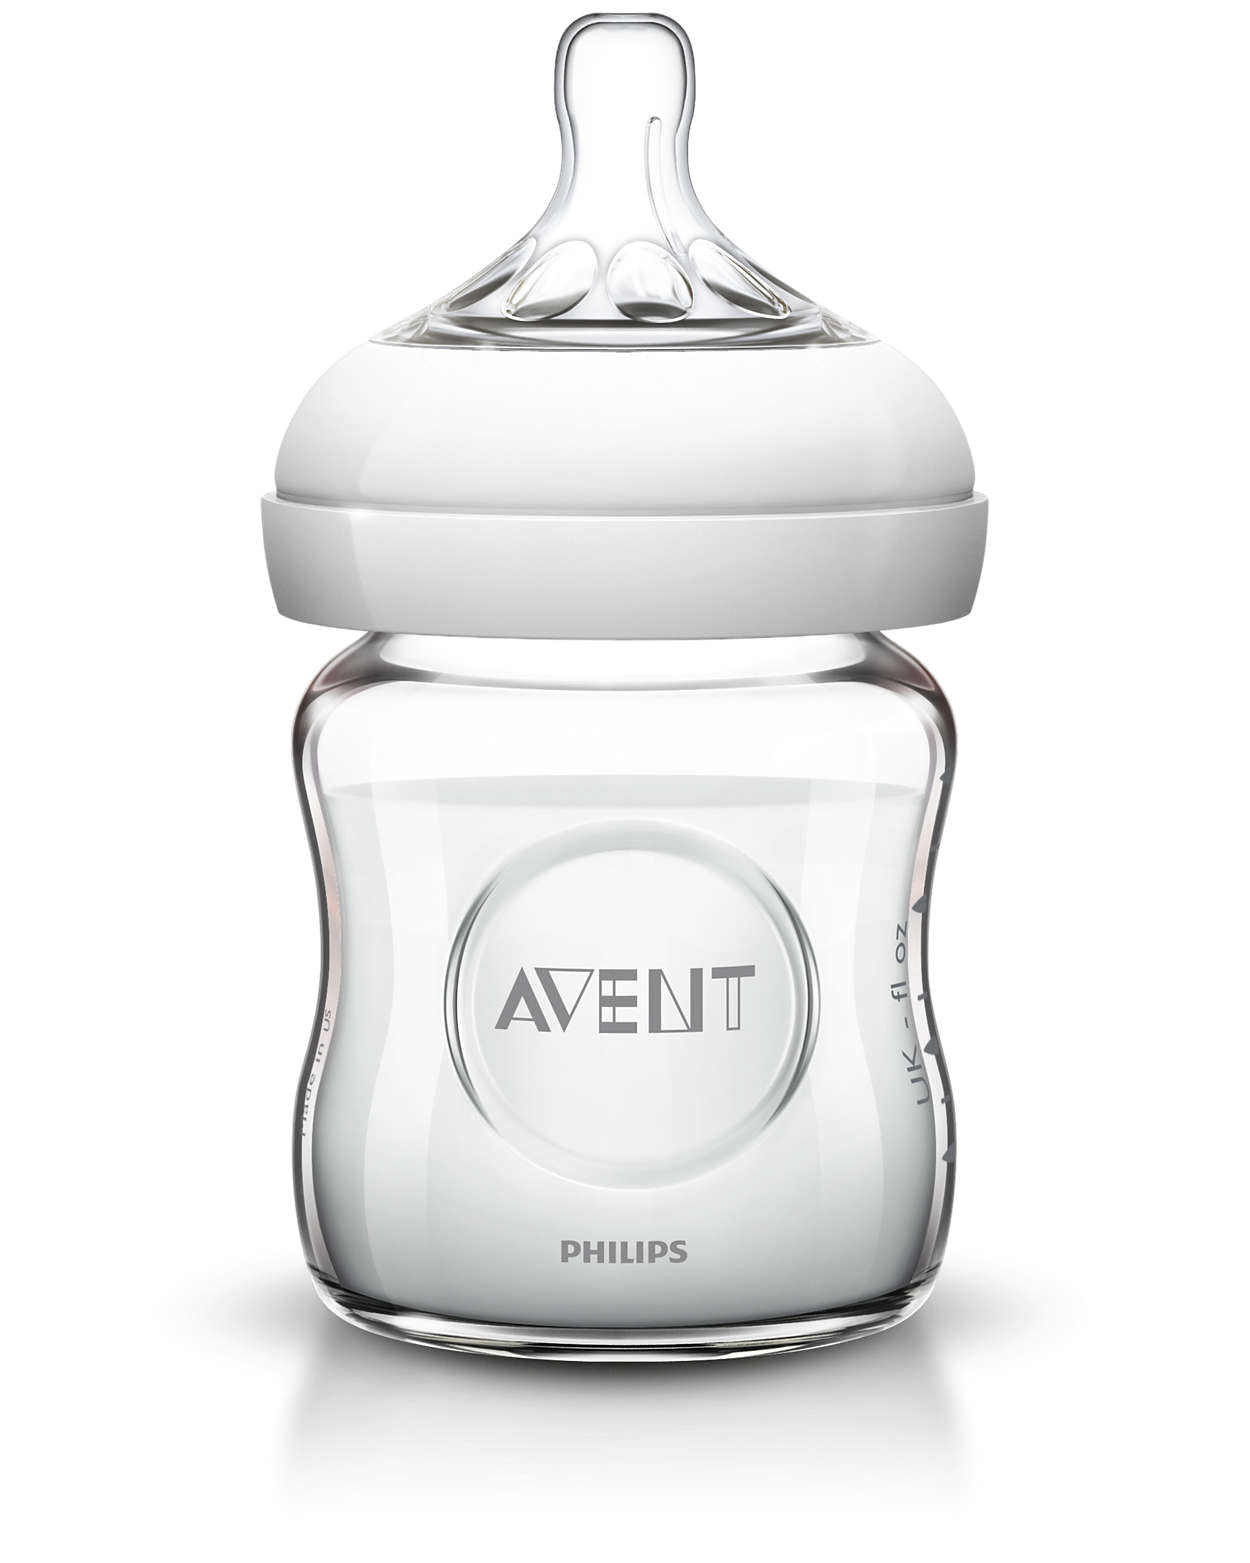 Philips AVENT Glass Feeding Bottle - SCF671/17